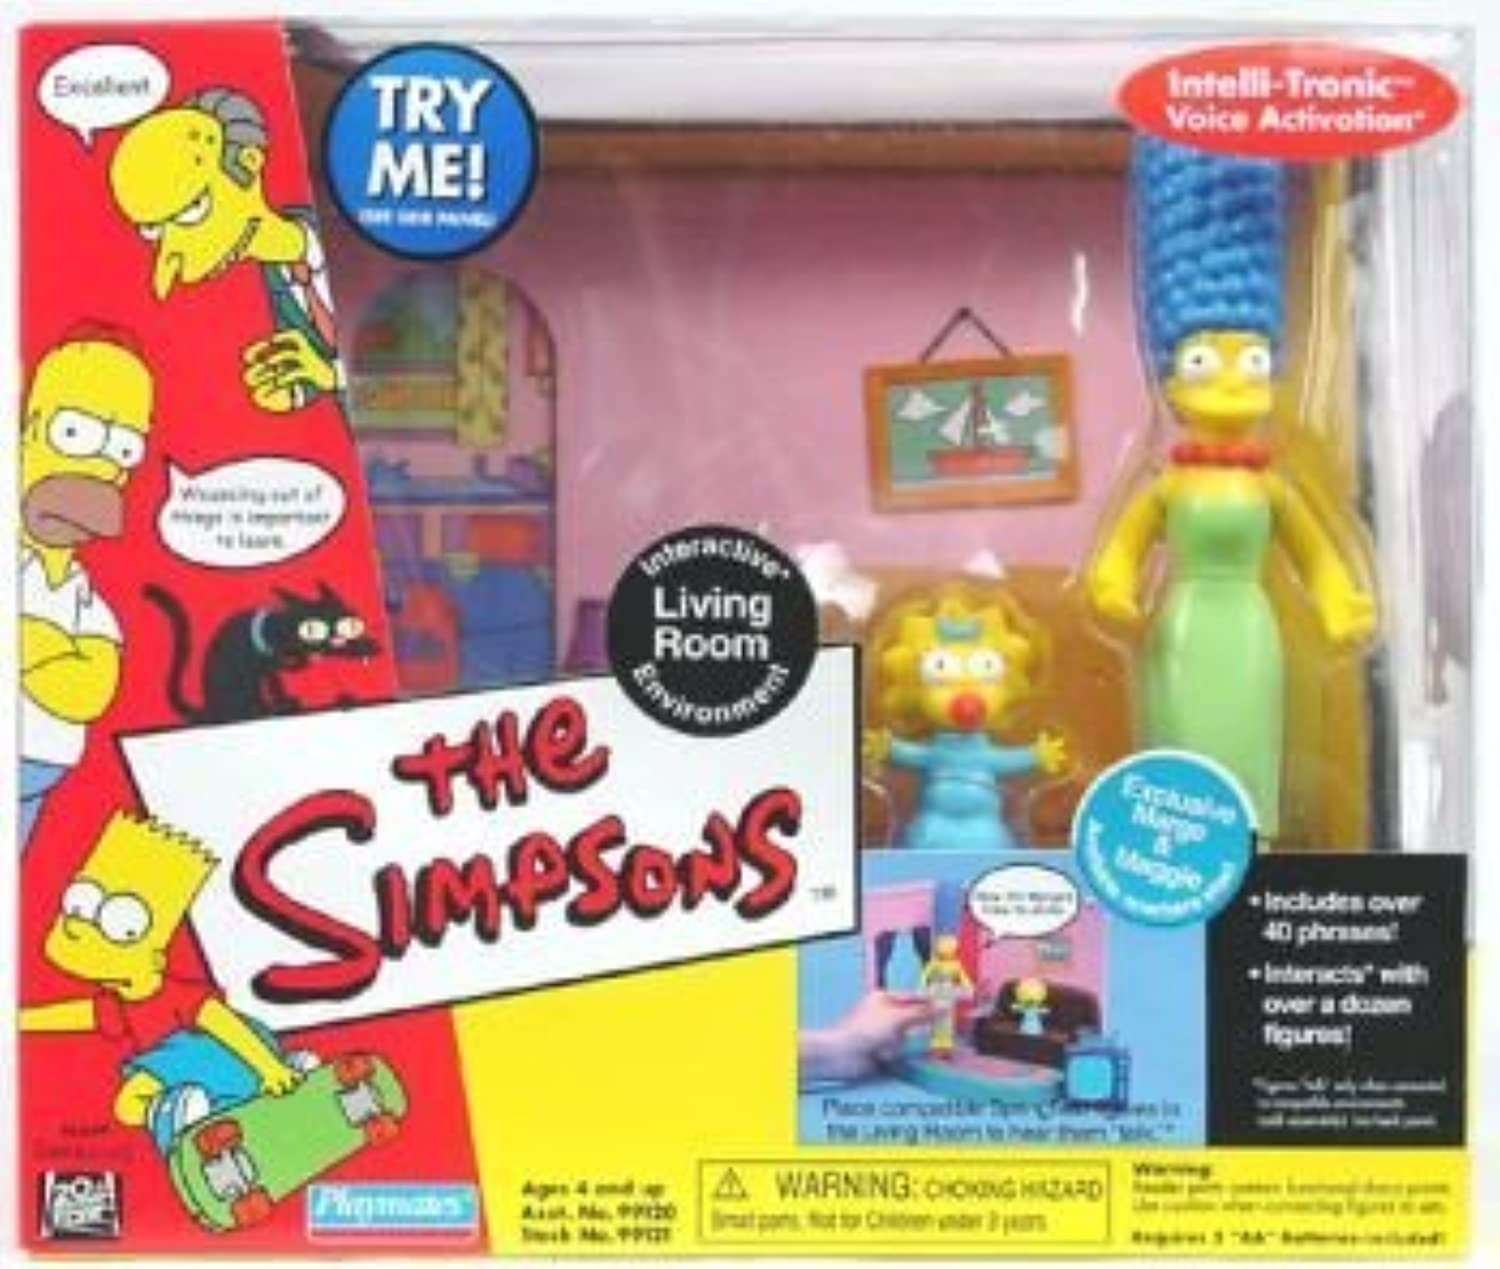 a precios asequibles The Simpsons Living Room Jugarset Jugarset Jugarset with Exclusive Marge & Maggie by Simpsons  marca